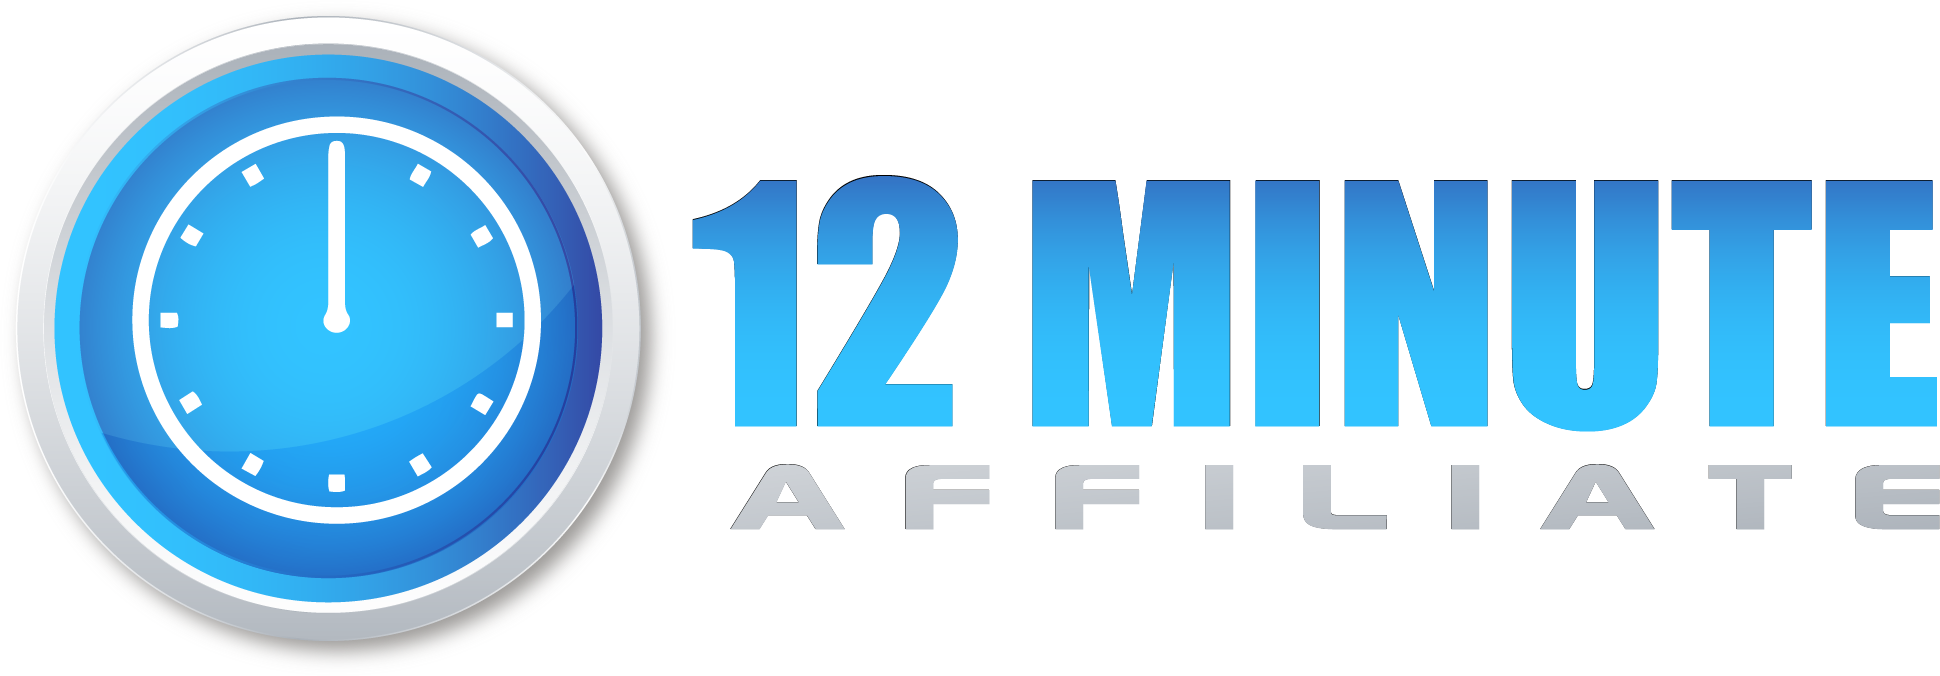 Welcome to 12minuteaffiliate.come